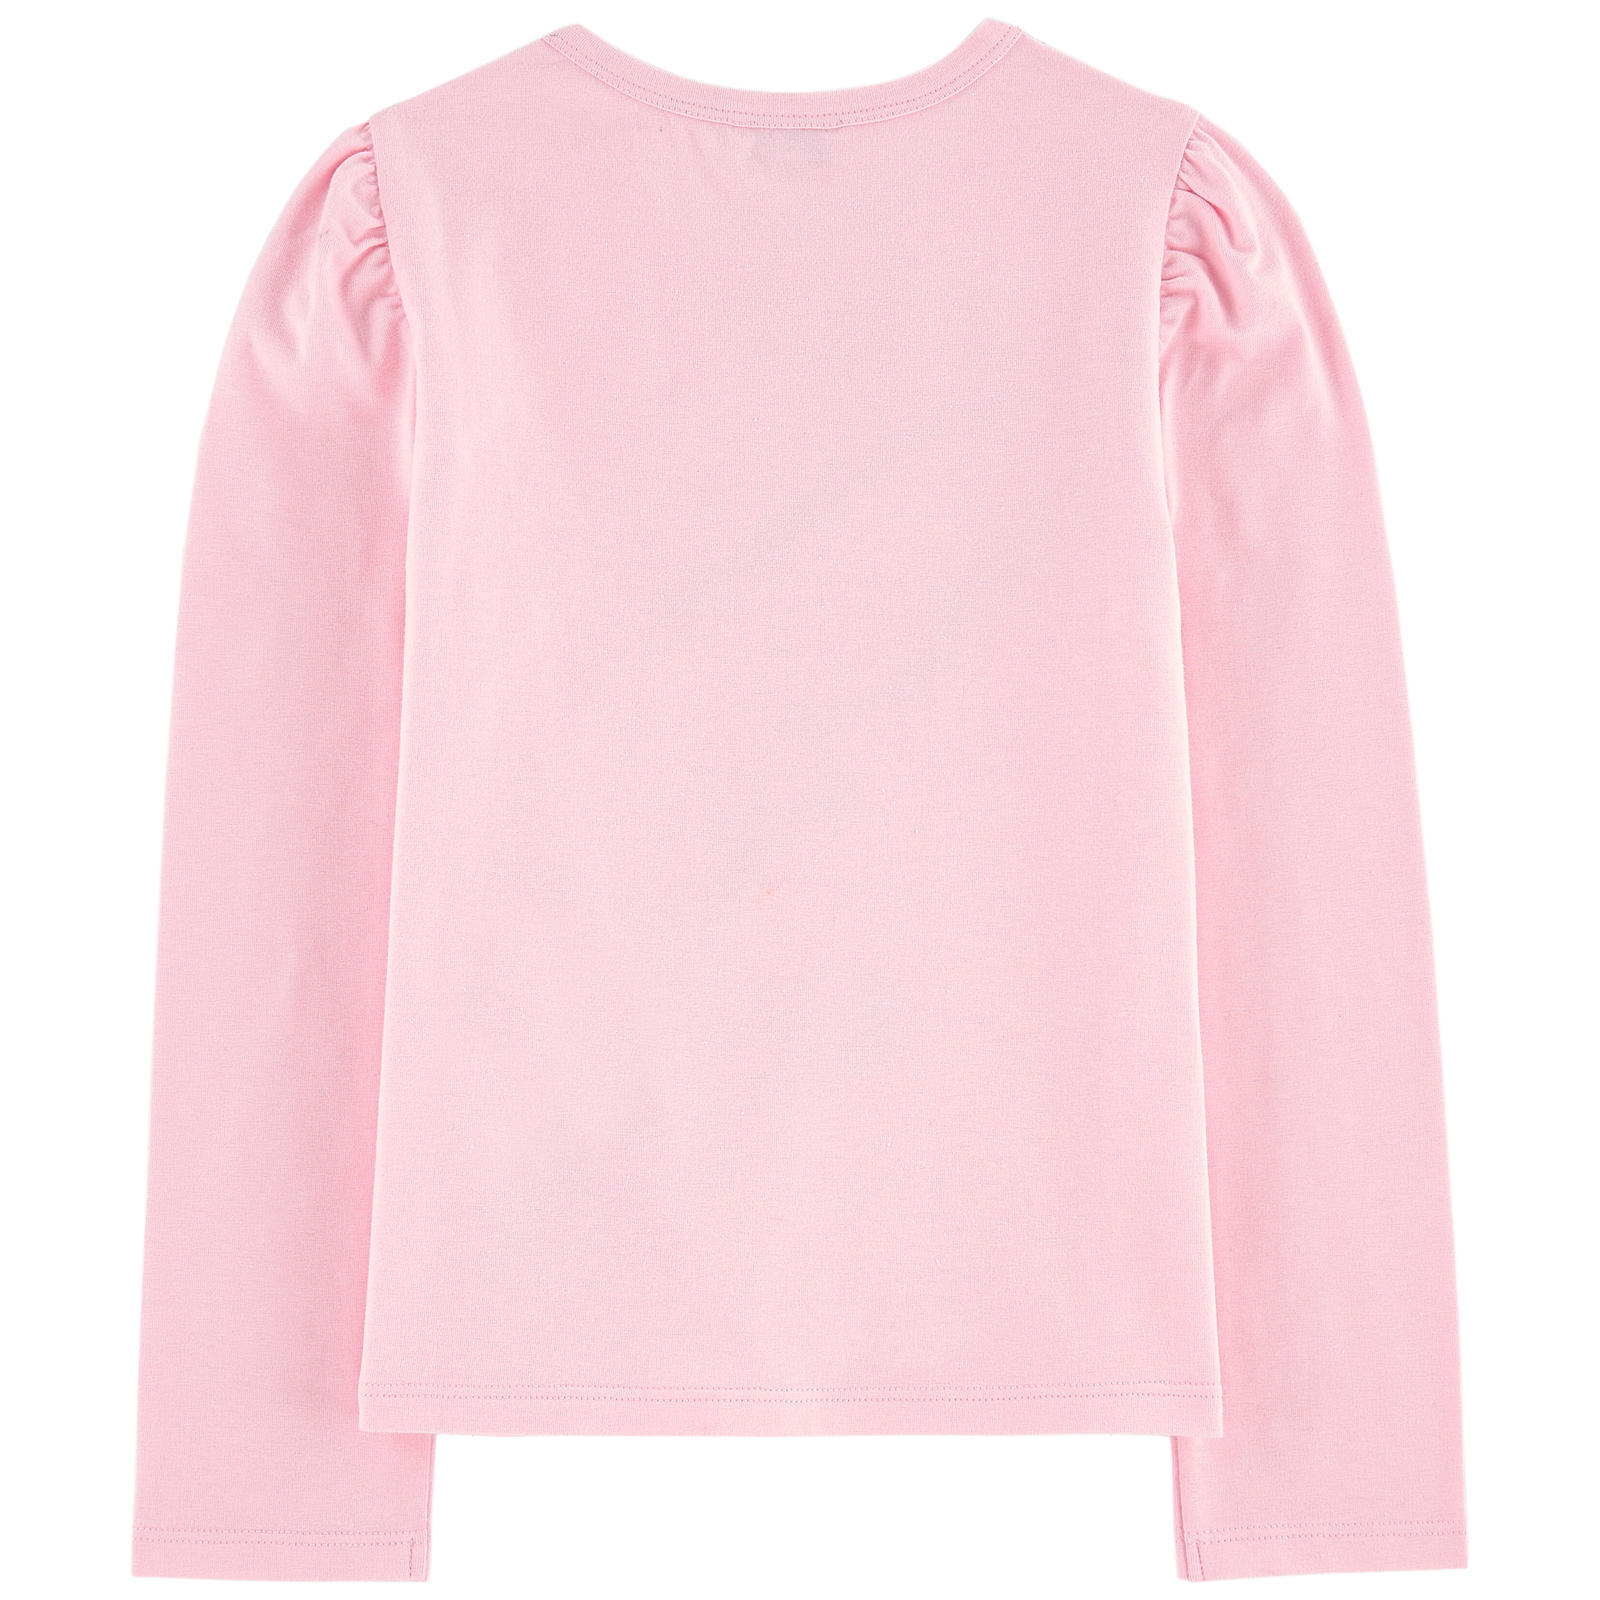 KENZO★2017AW★ロゴ入長袖Tシャツ★ライトピンク★3~6Y